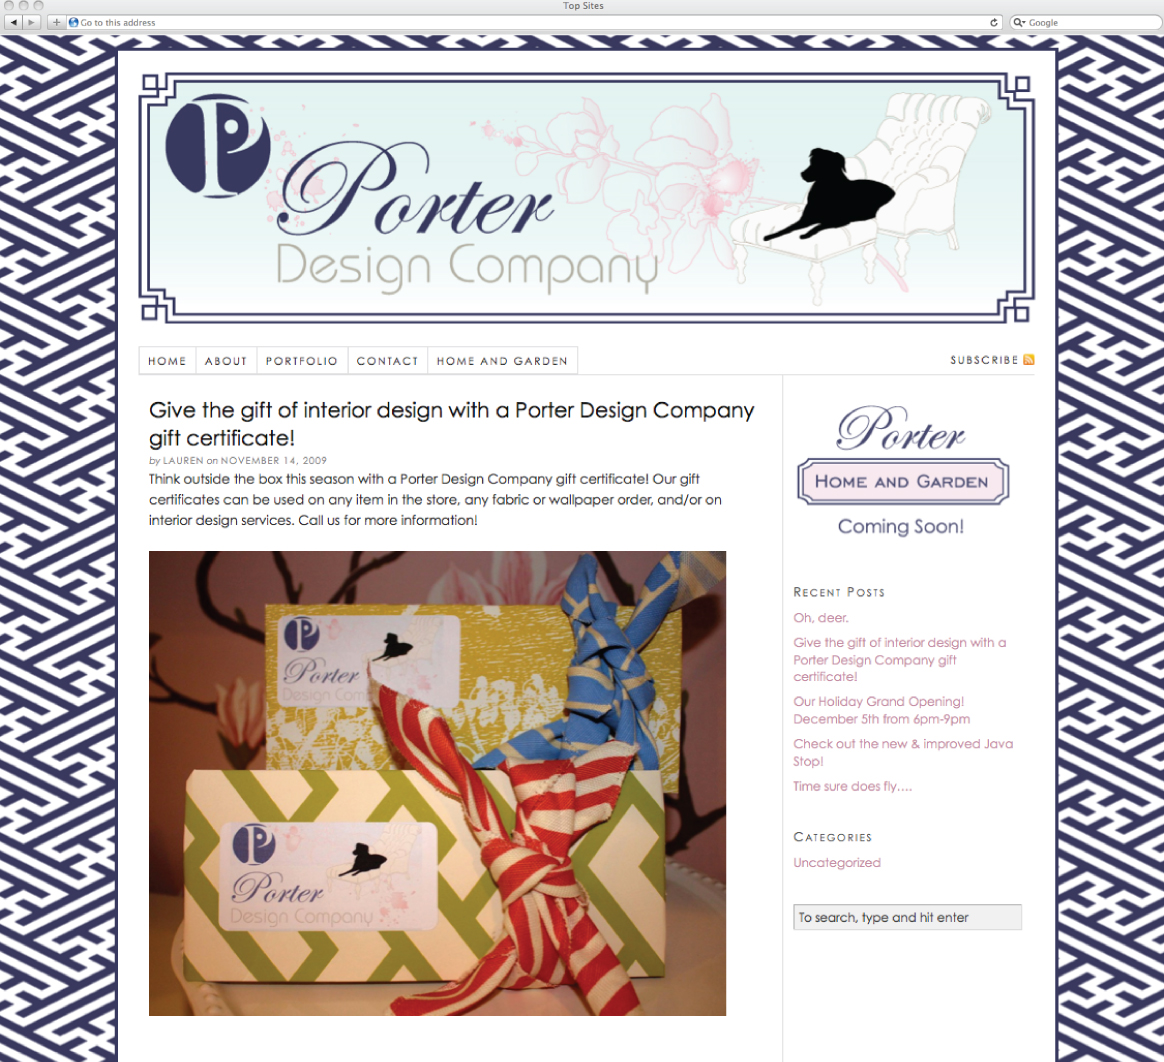 Emily French of Artz Collective designs and develops a website for Porter Design Company